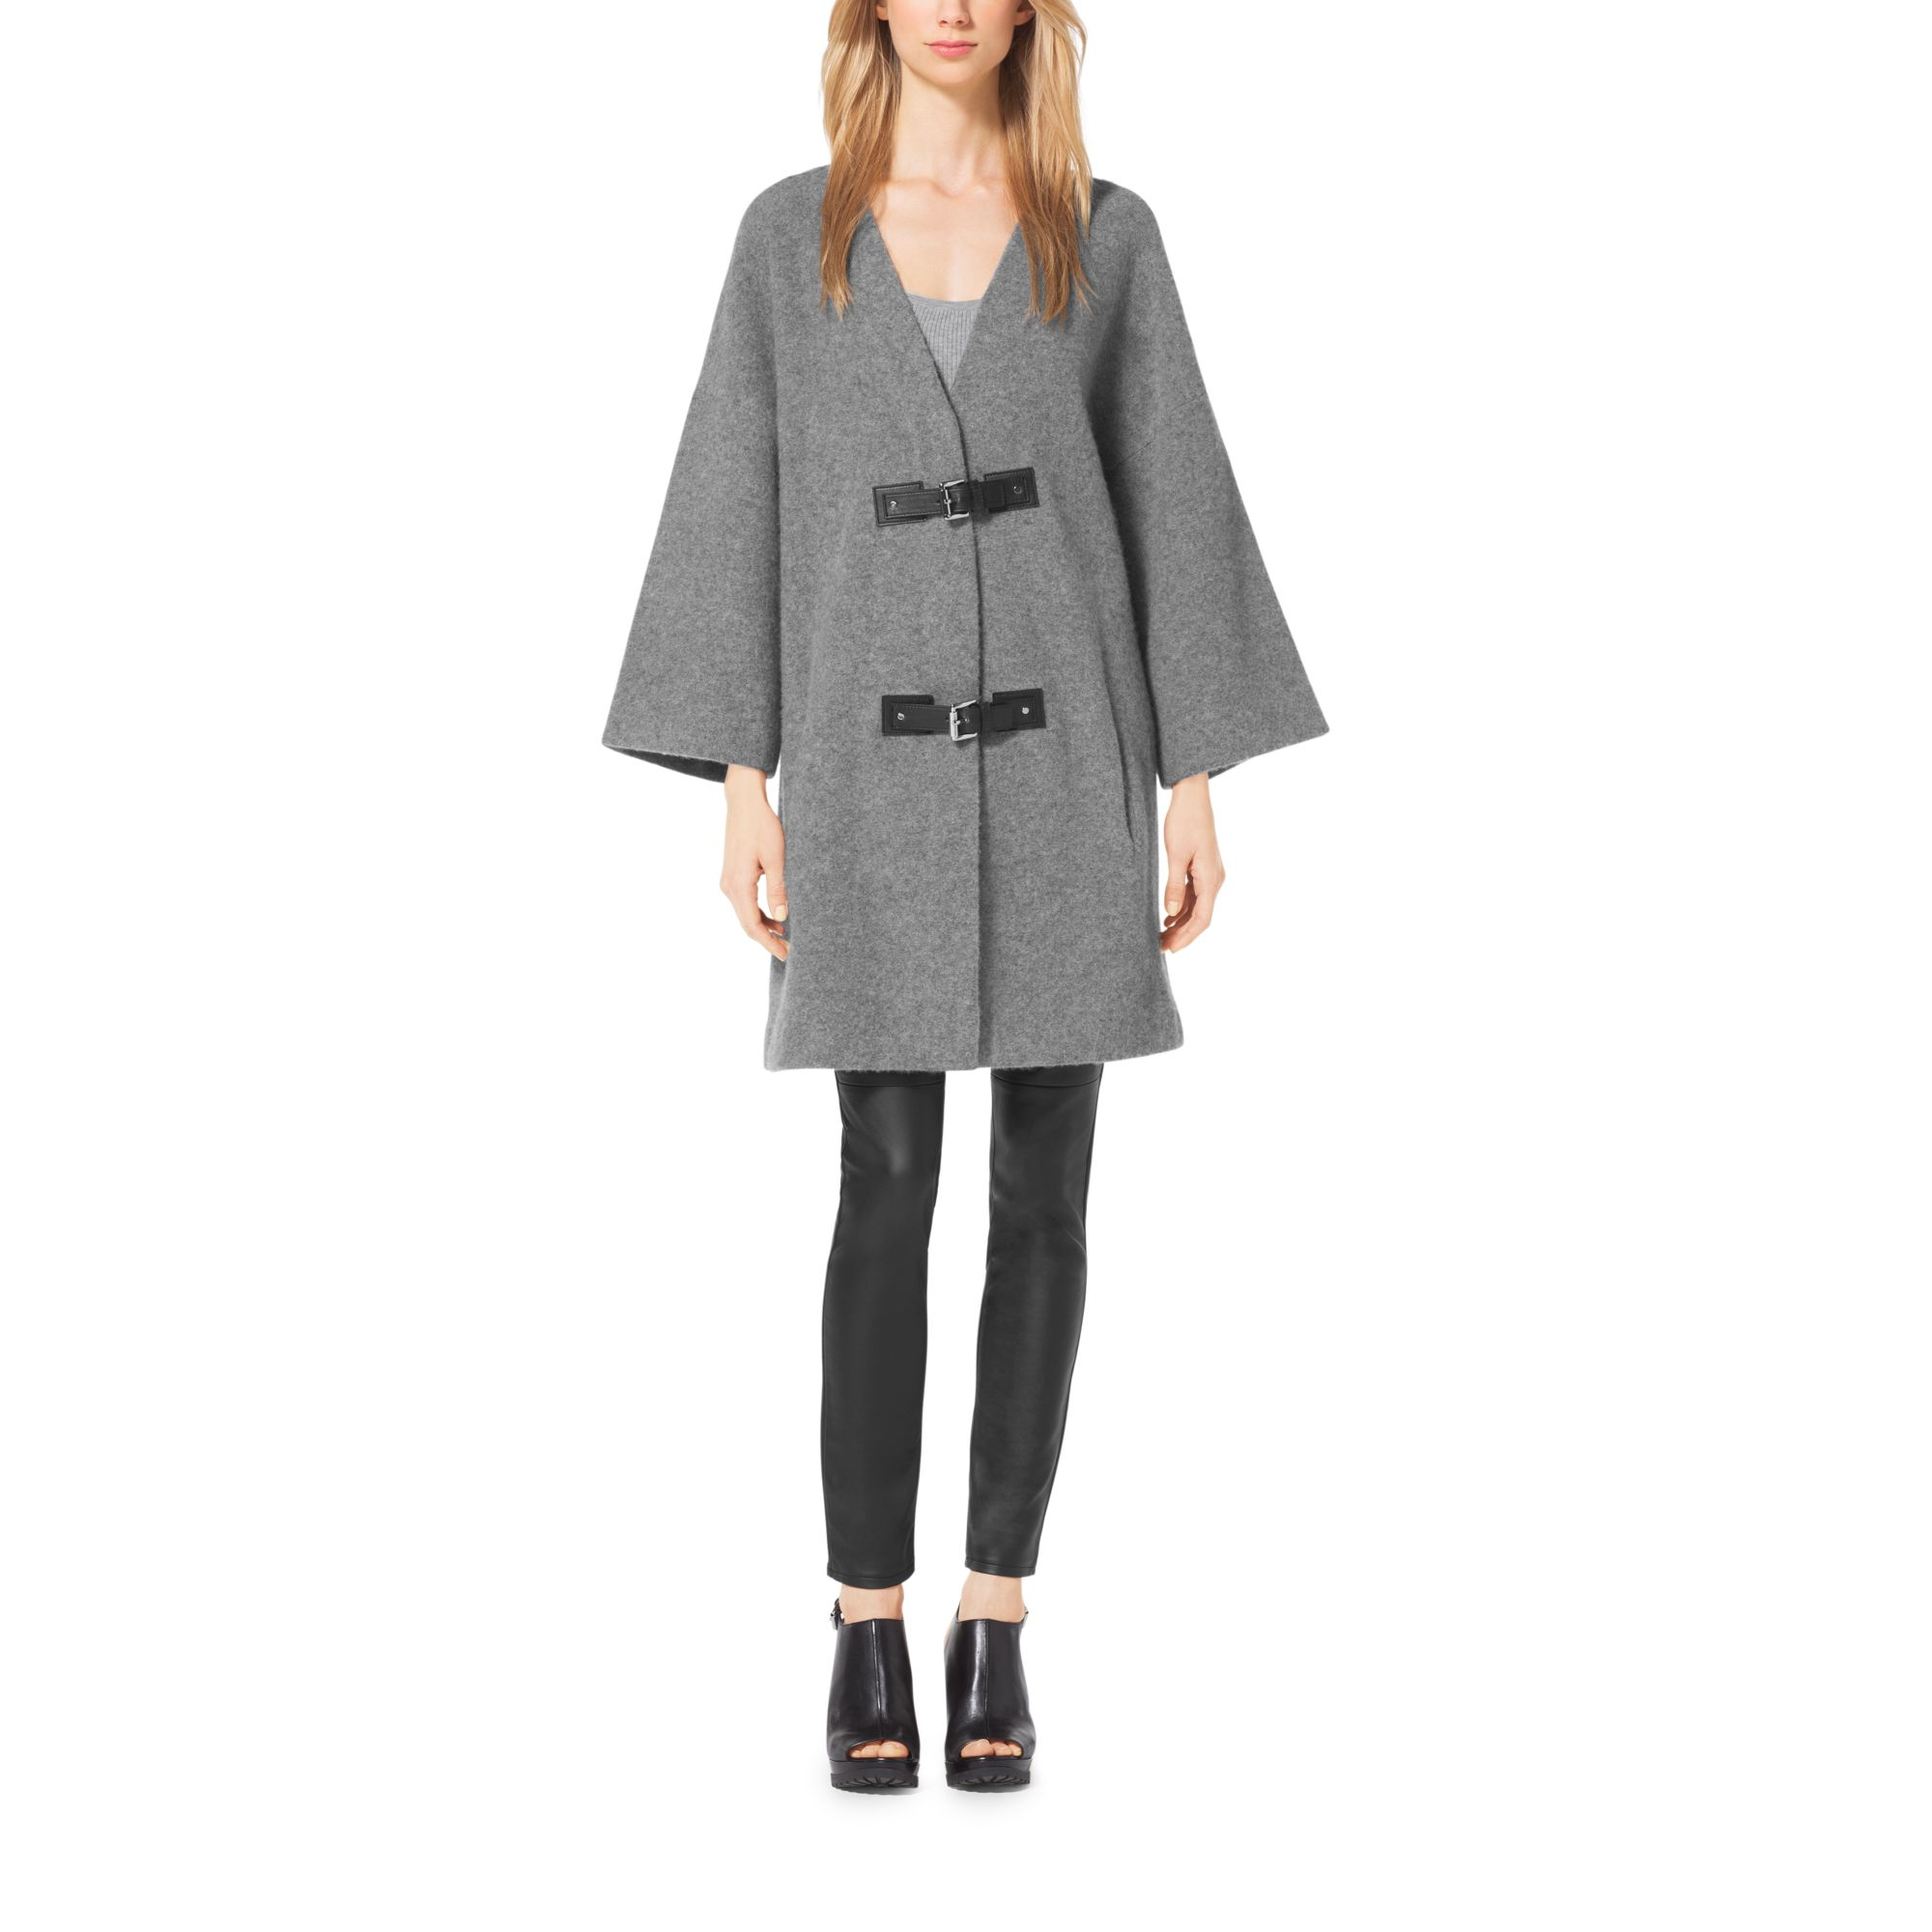 Michael kors Buckled Merino Wool Sweater Coat, Plus Size in Gray ...